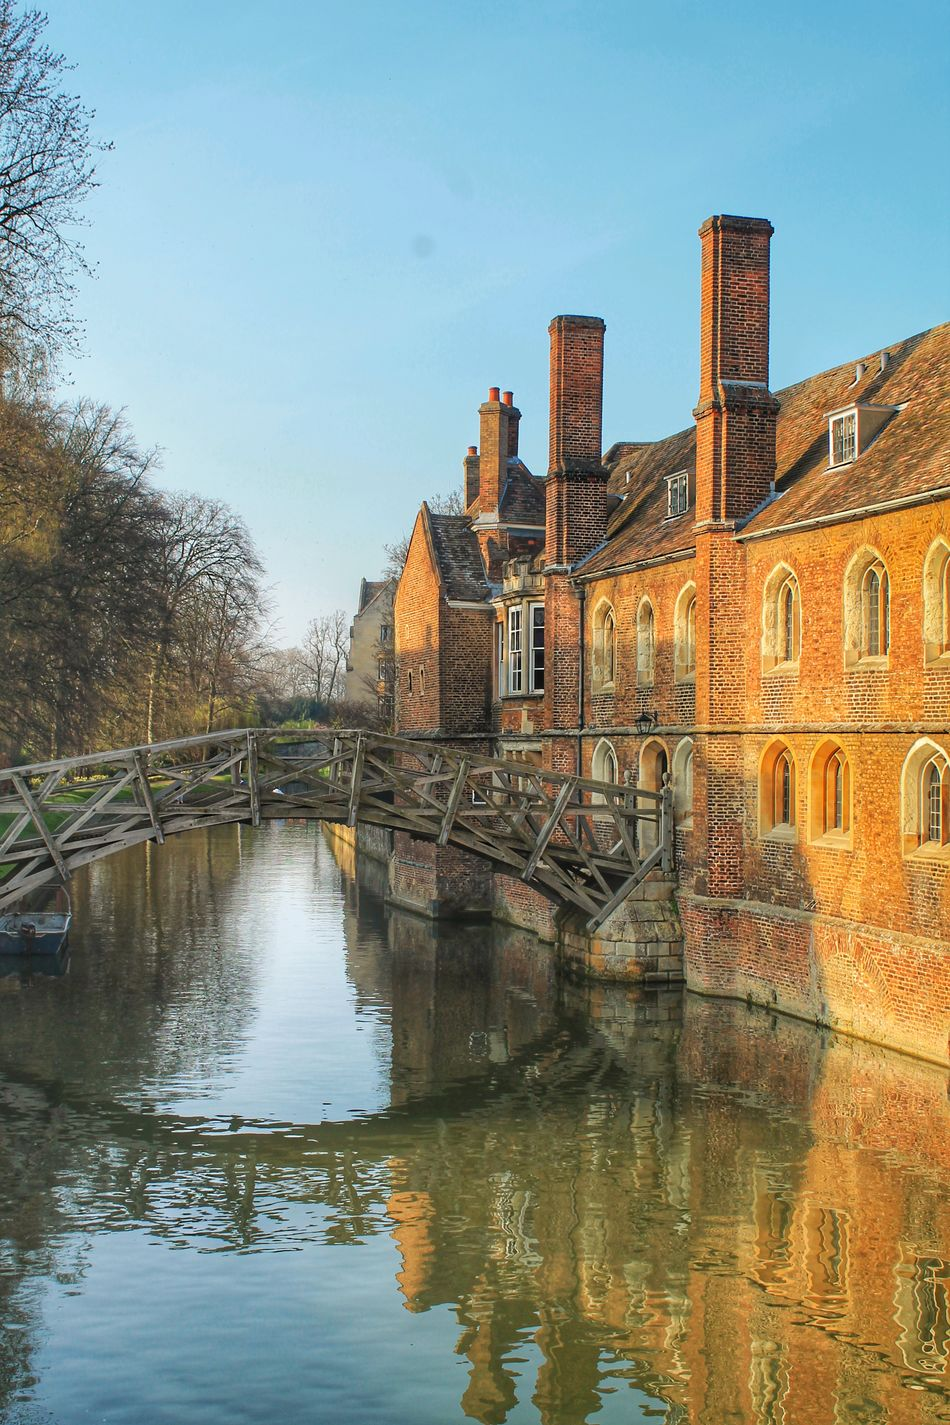 Architecture Boat Brick Bridge - Man Made Structure Building Exterior Built Structure Cambridge Chimney Cross Day England House Mathematical Bridge No People Outdoors Punting River Sky Tree Uk University Water Wood Wooden Bridge